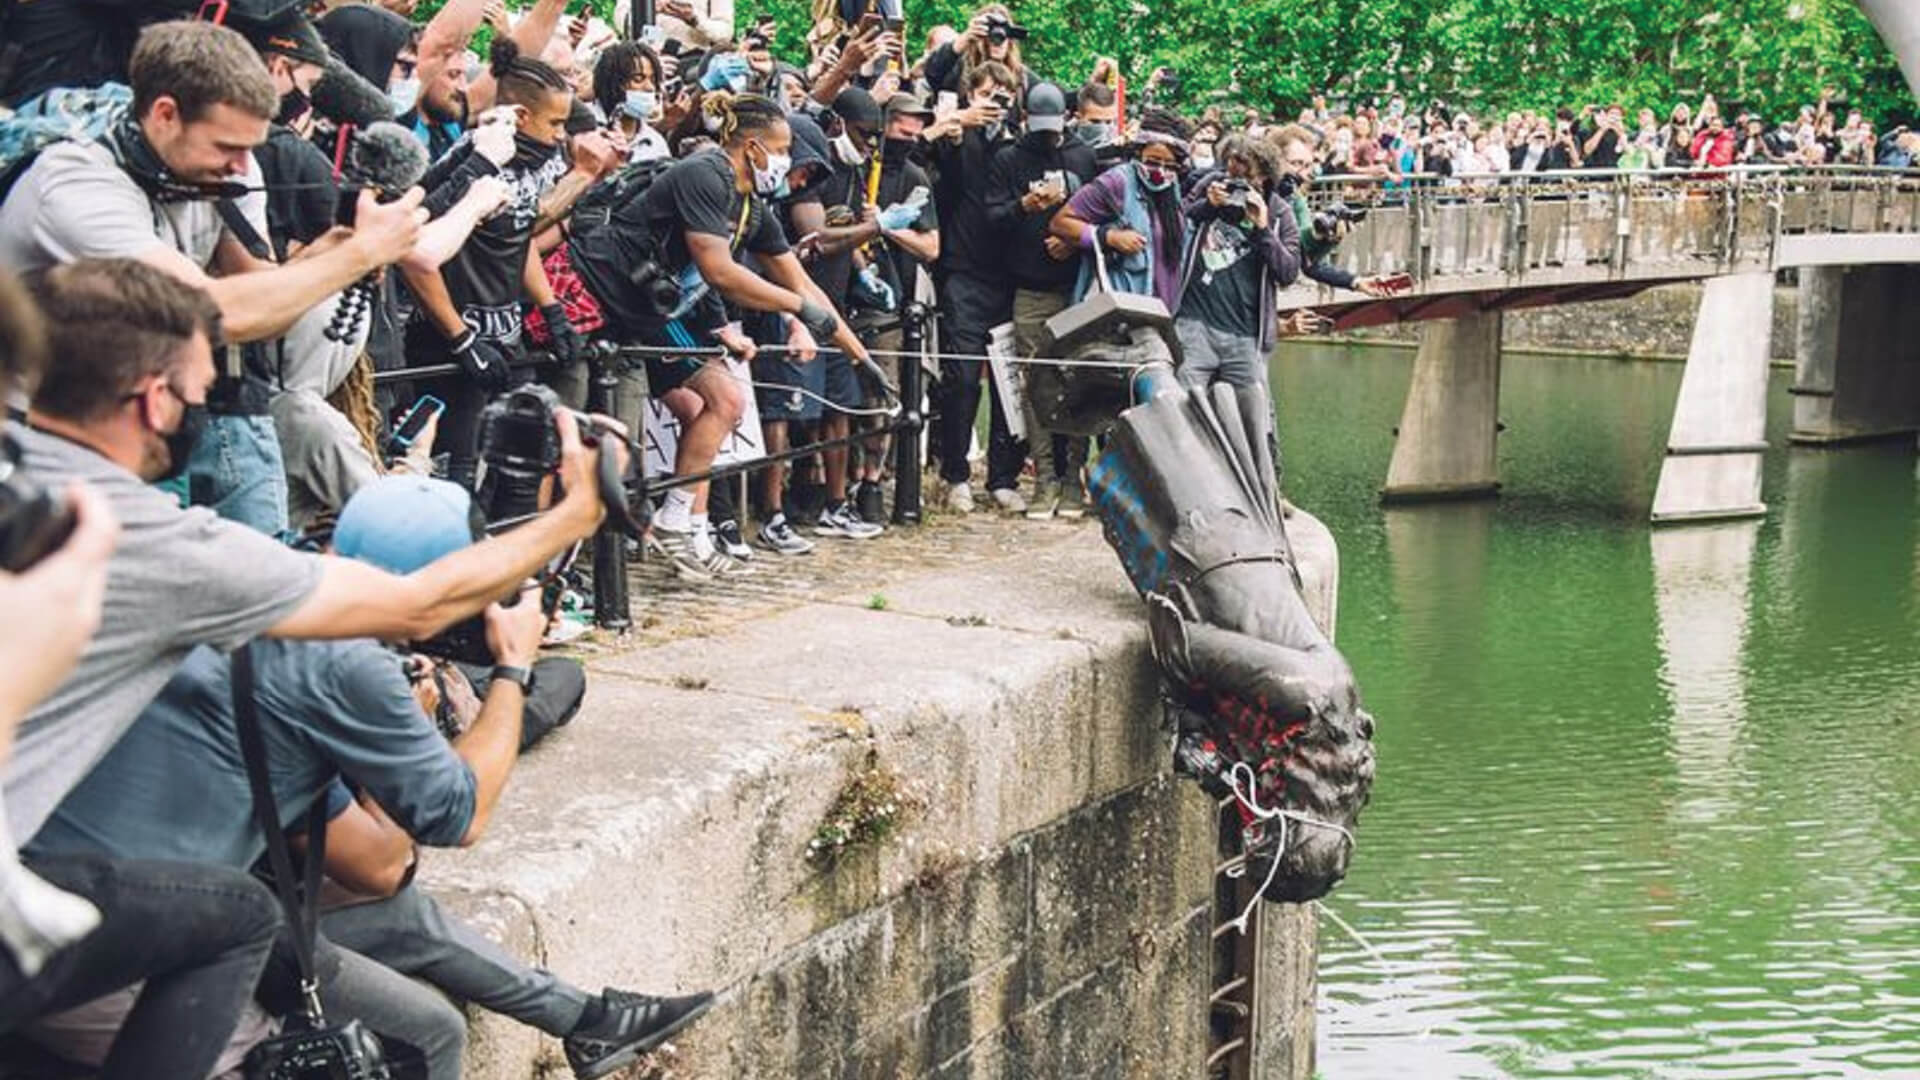 Angry protestors dethrone the statue of British slave trader Edward Colston in Bristol, UK | Dethrone the Demon |STIRworld